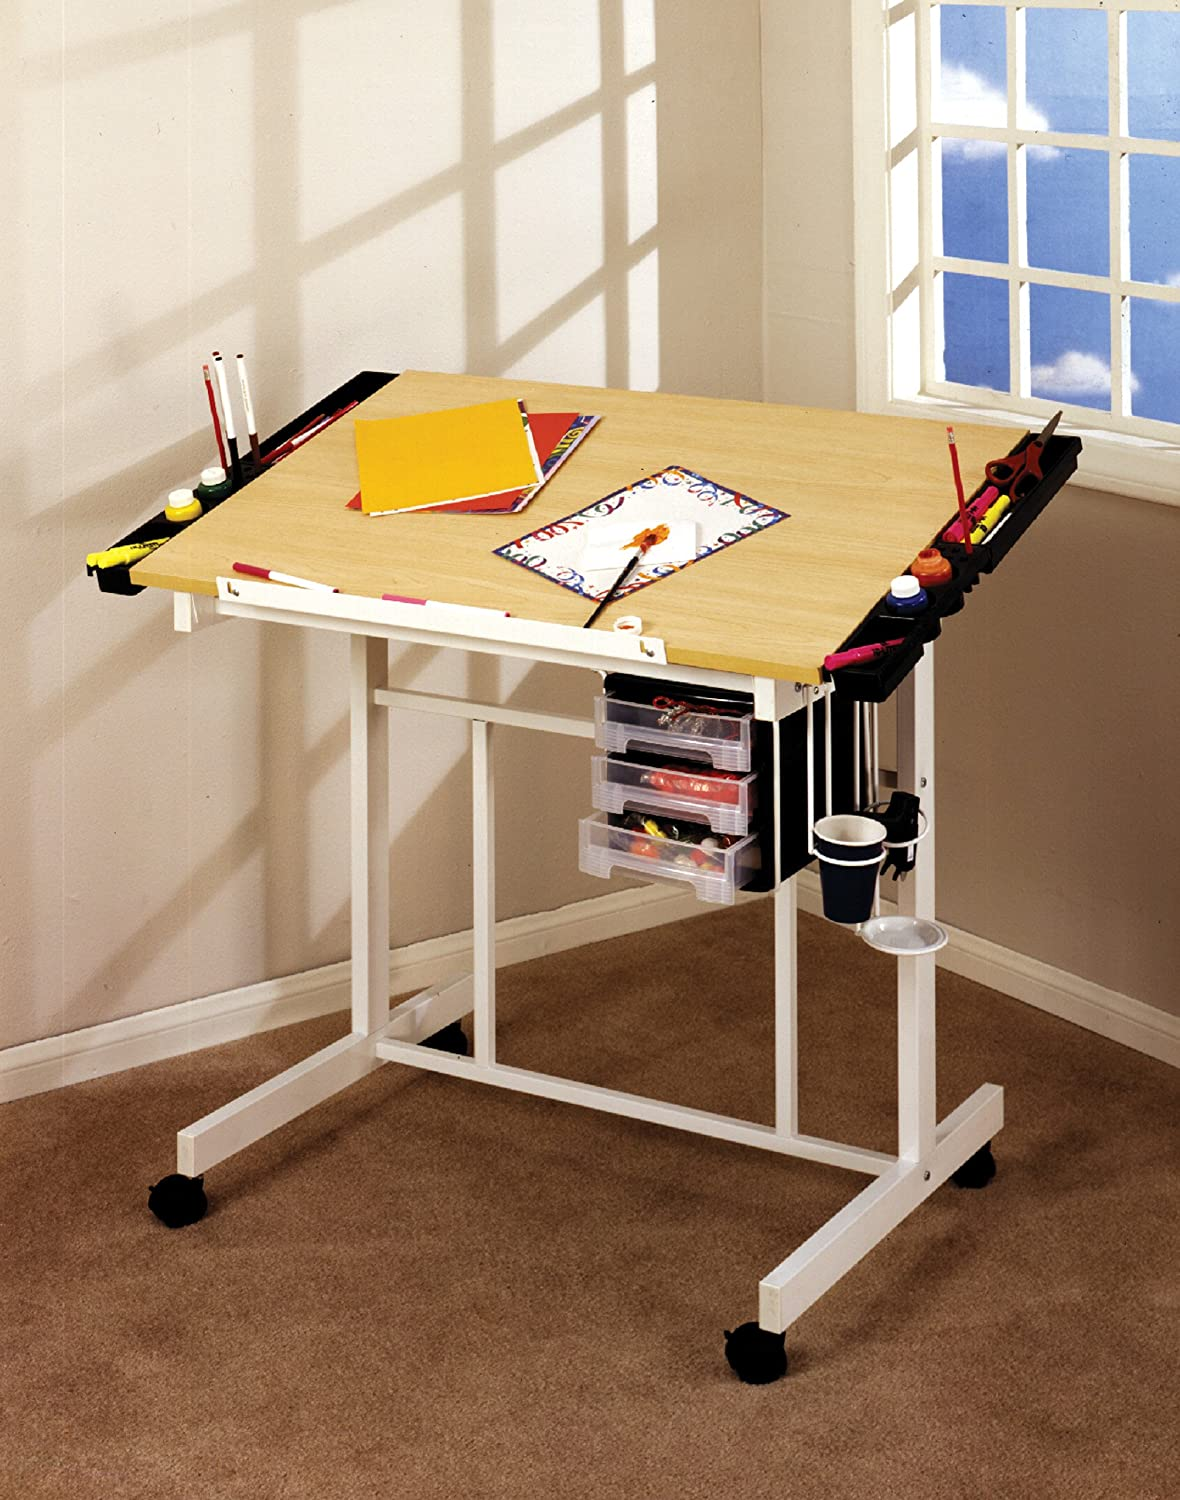 Studio designs deluxe craft station art hobby table paint for Table design on mobile